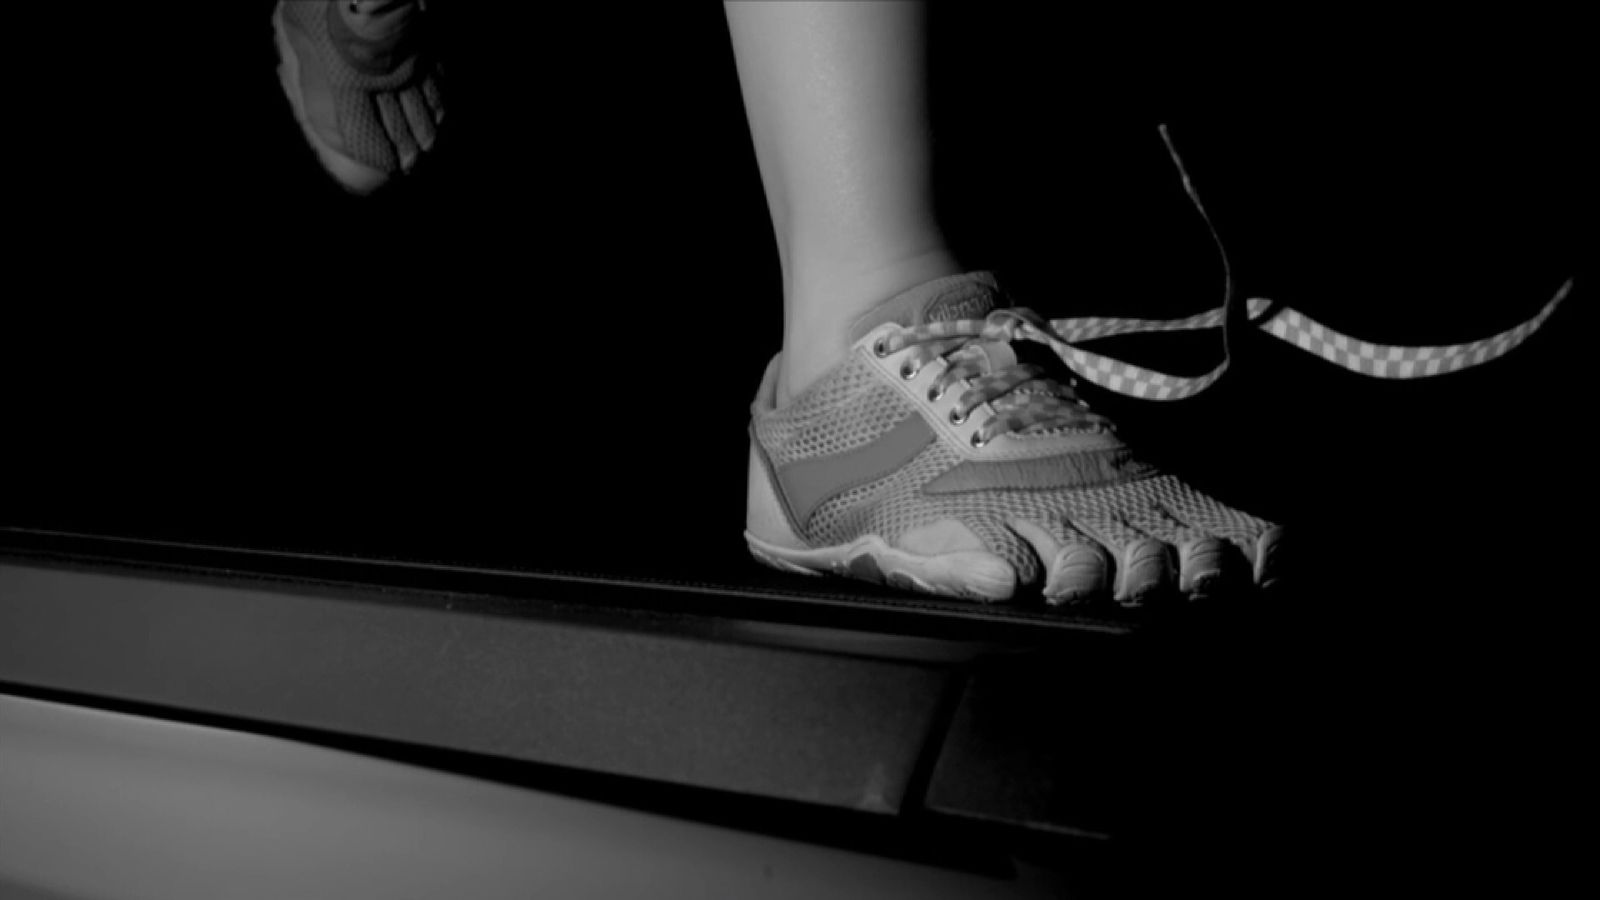 Inertia and impact both help to undo shoelaces